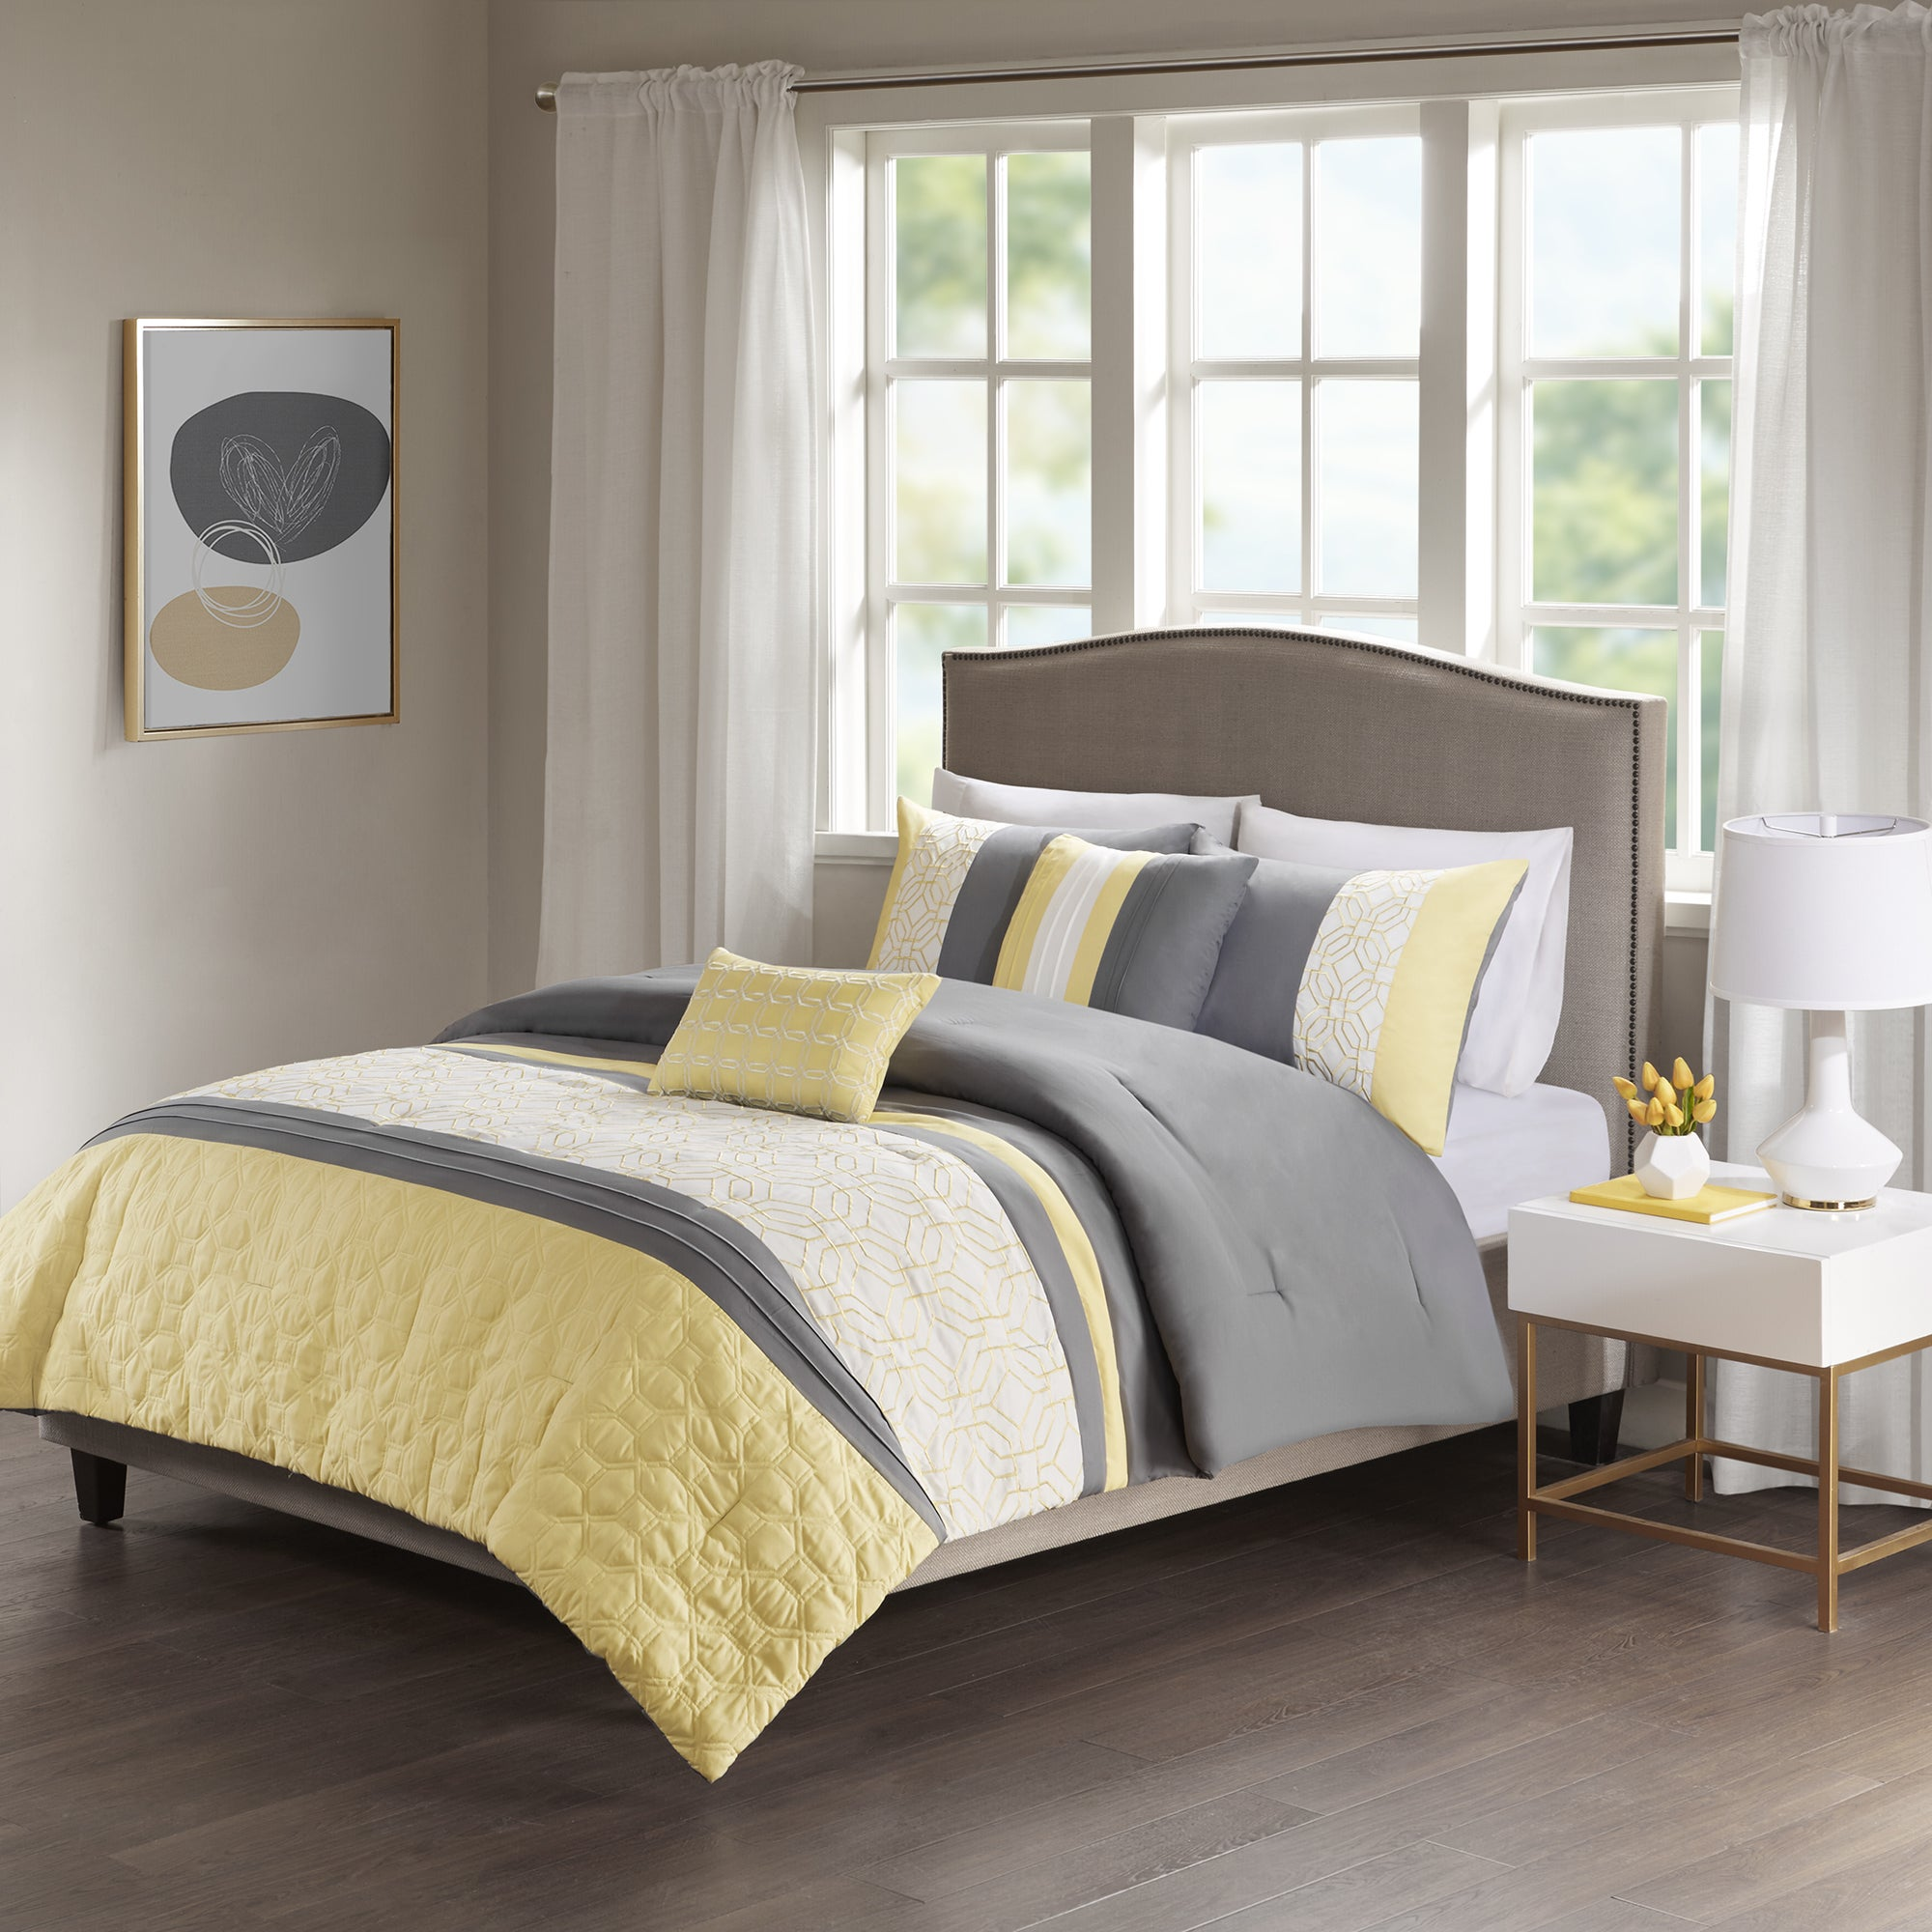 product ann set harbor bedding today overstock grey queen piece king free bath and shipping comforter yellow